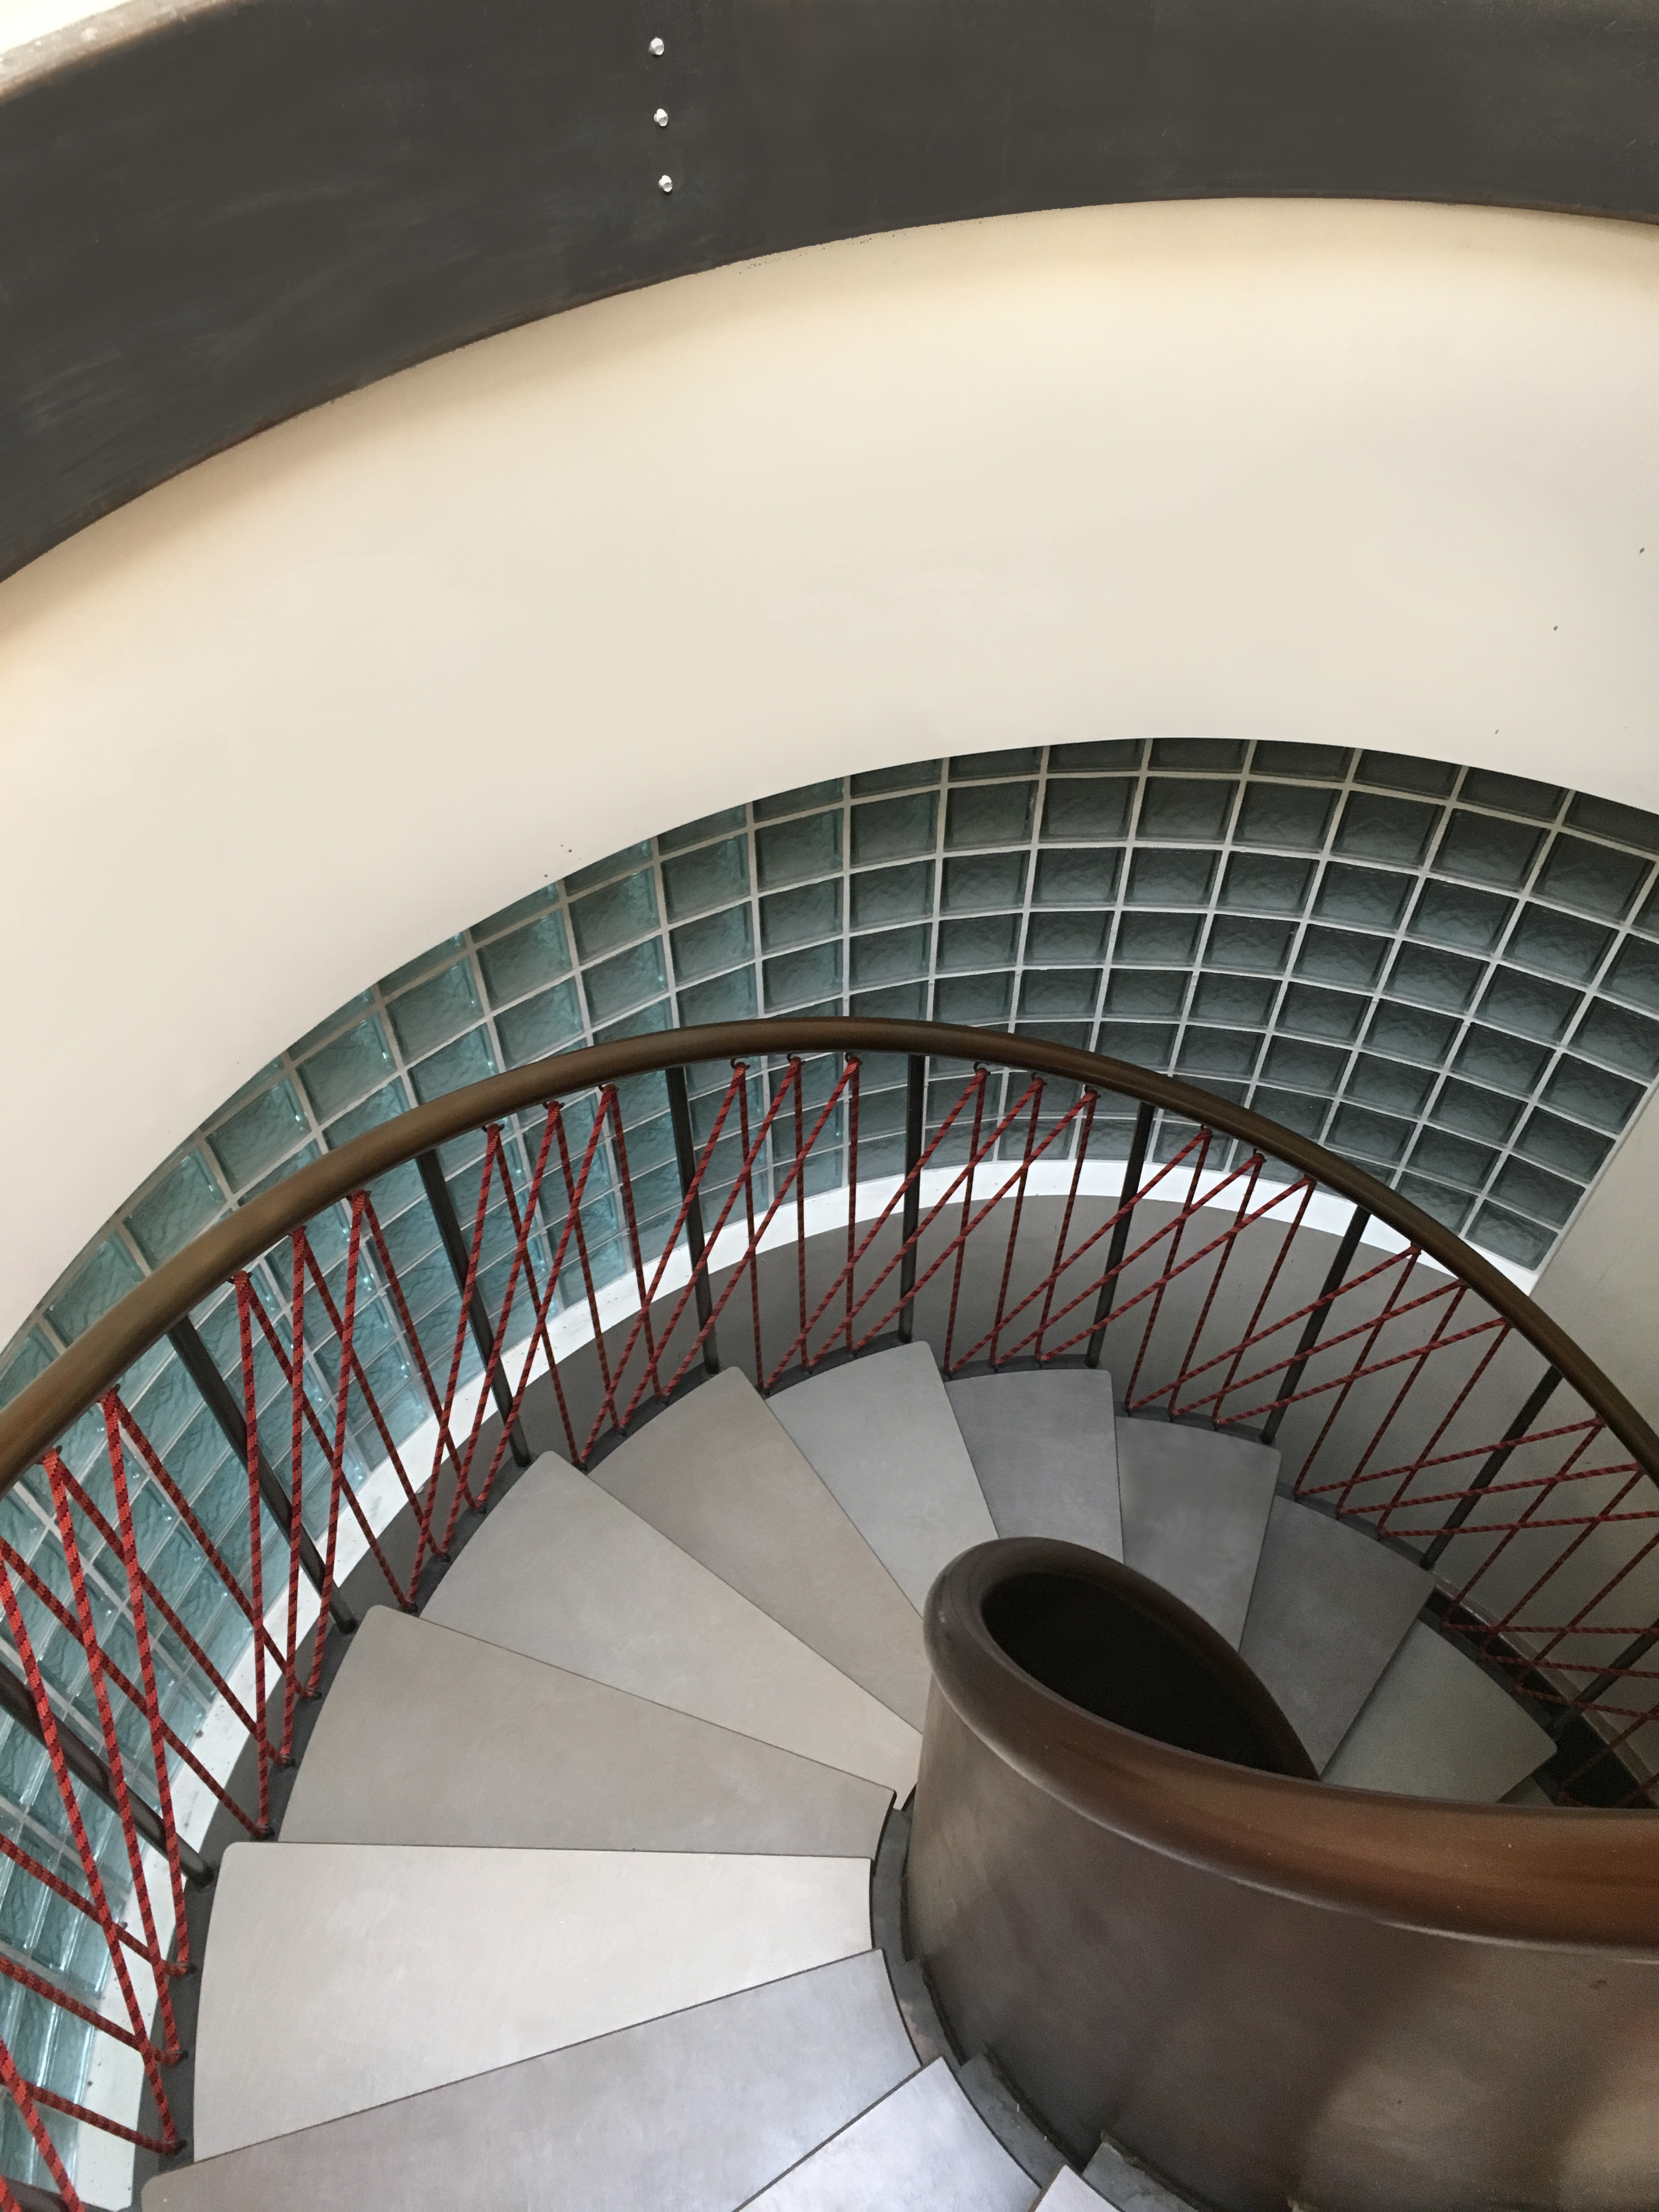 Spiral Stair - downward view